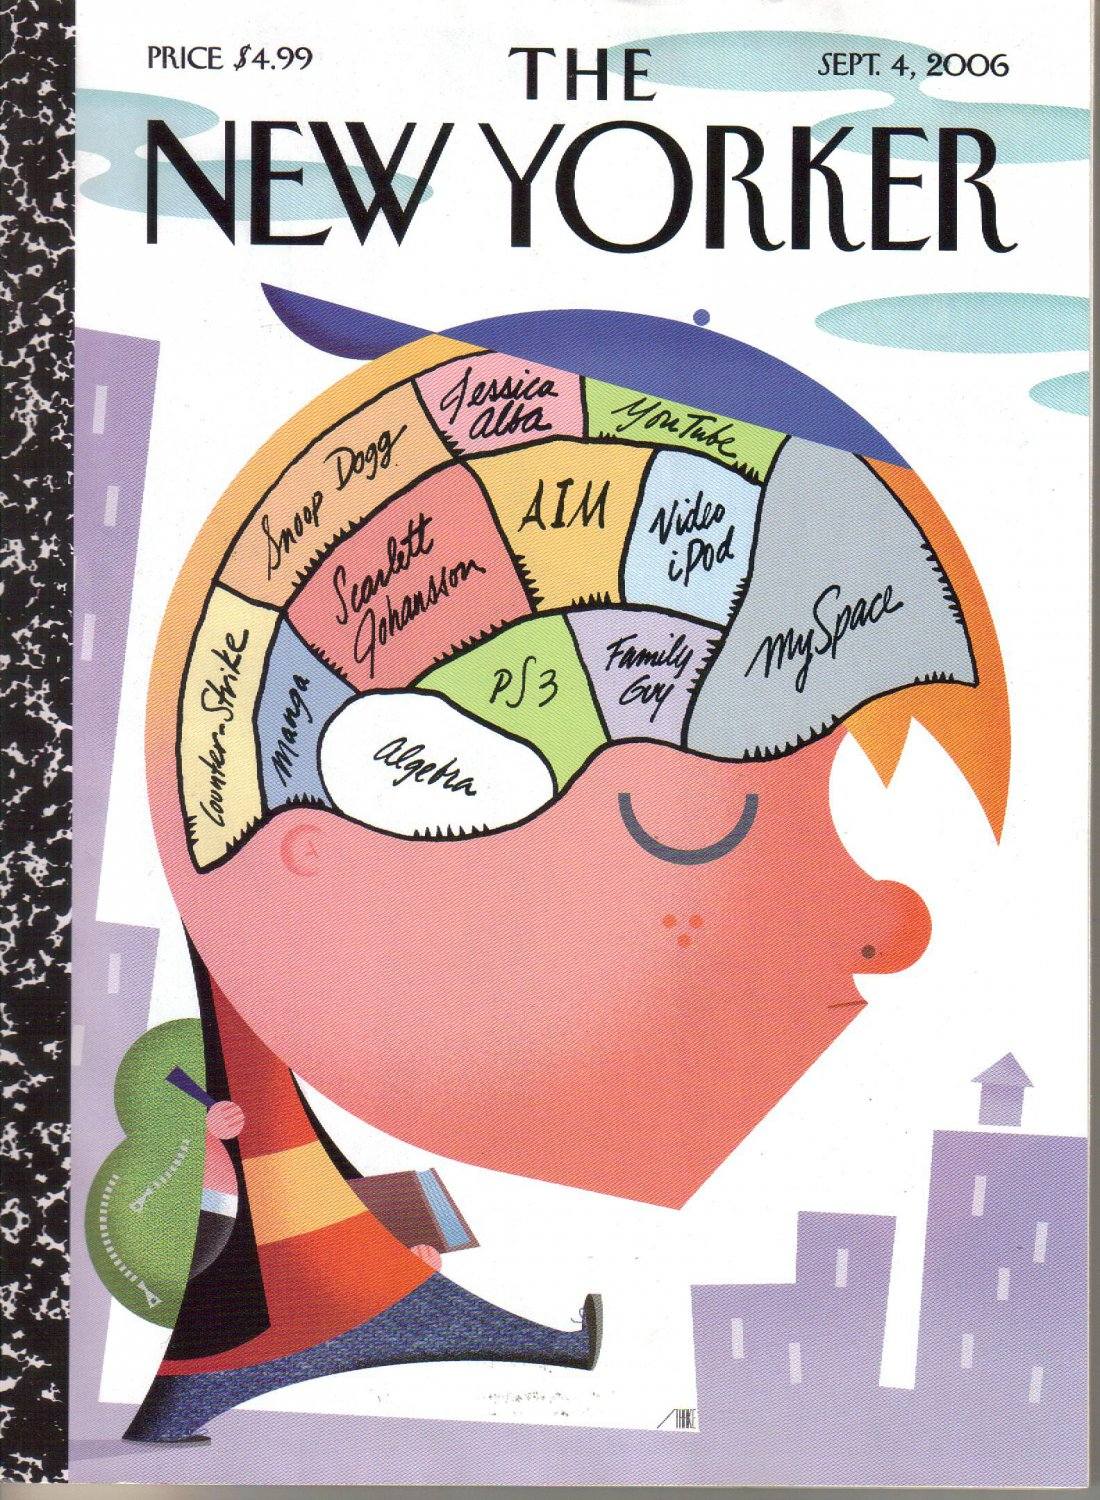 THE NEW YORKER September 4 2006 Magazine Back to Cool cover VW Ego Emmisions Index